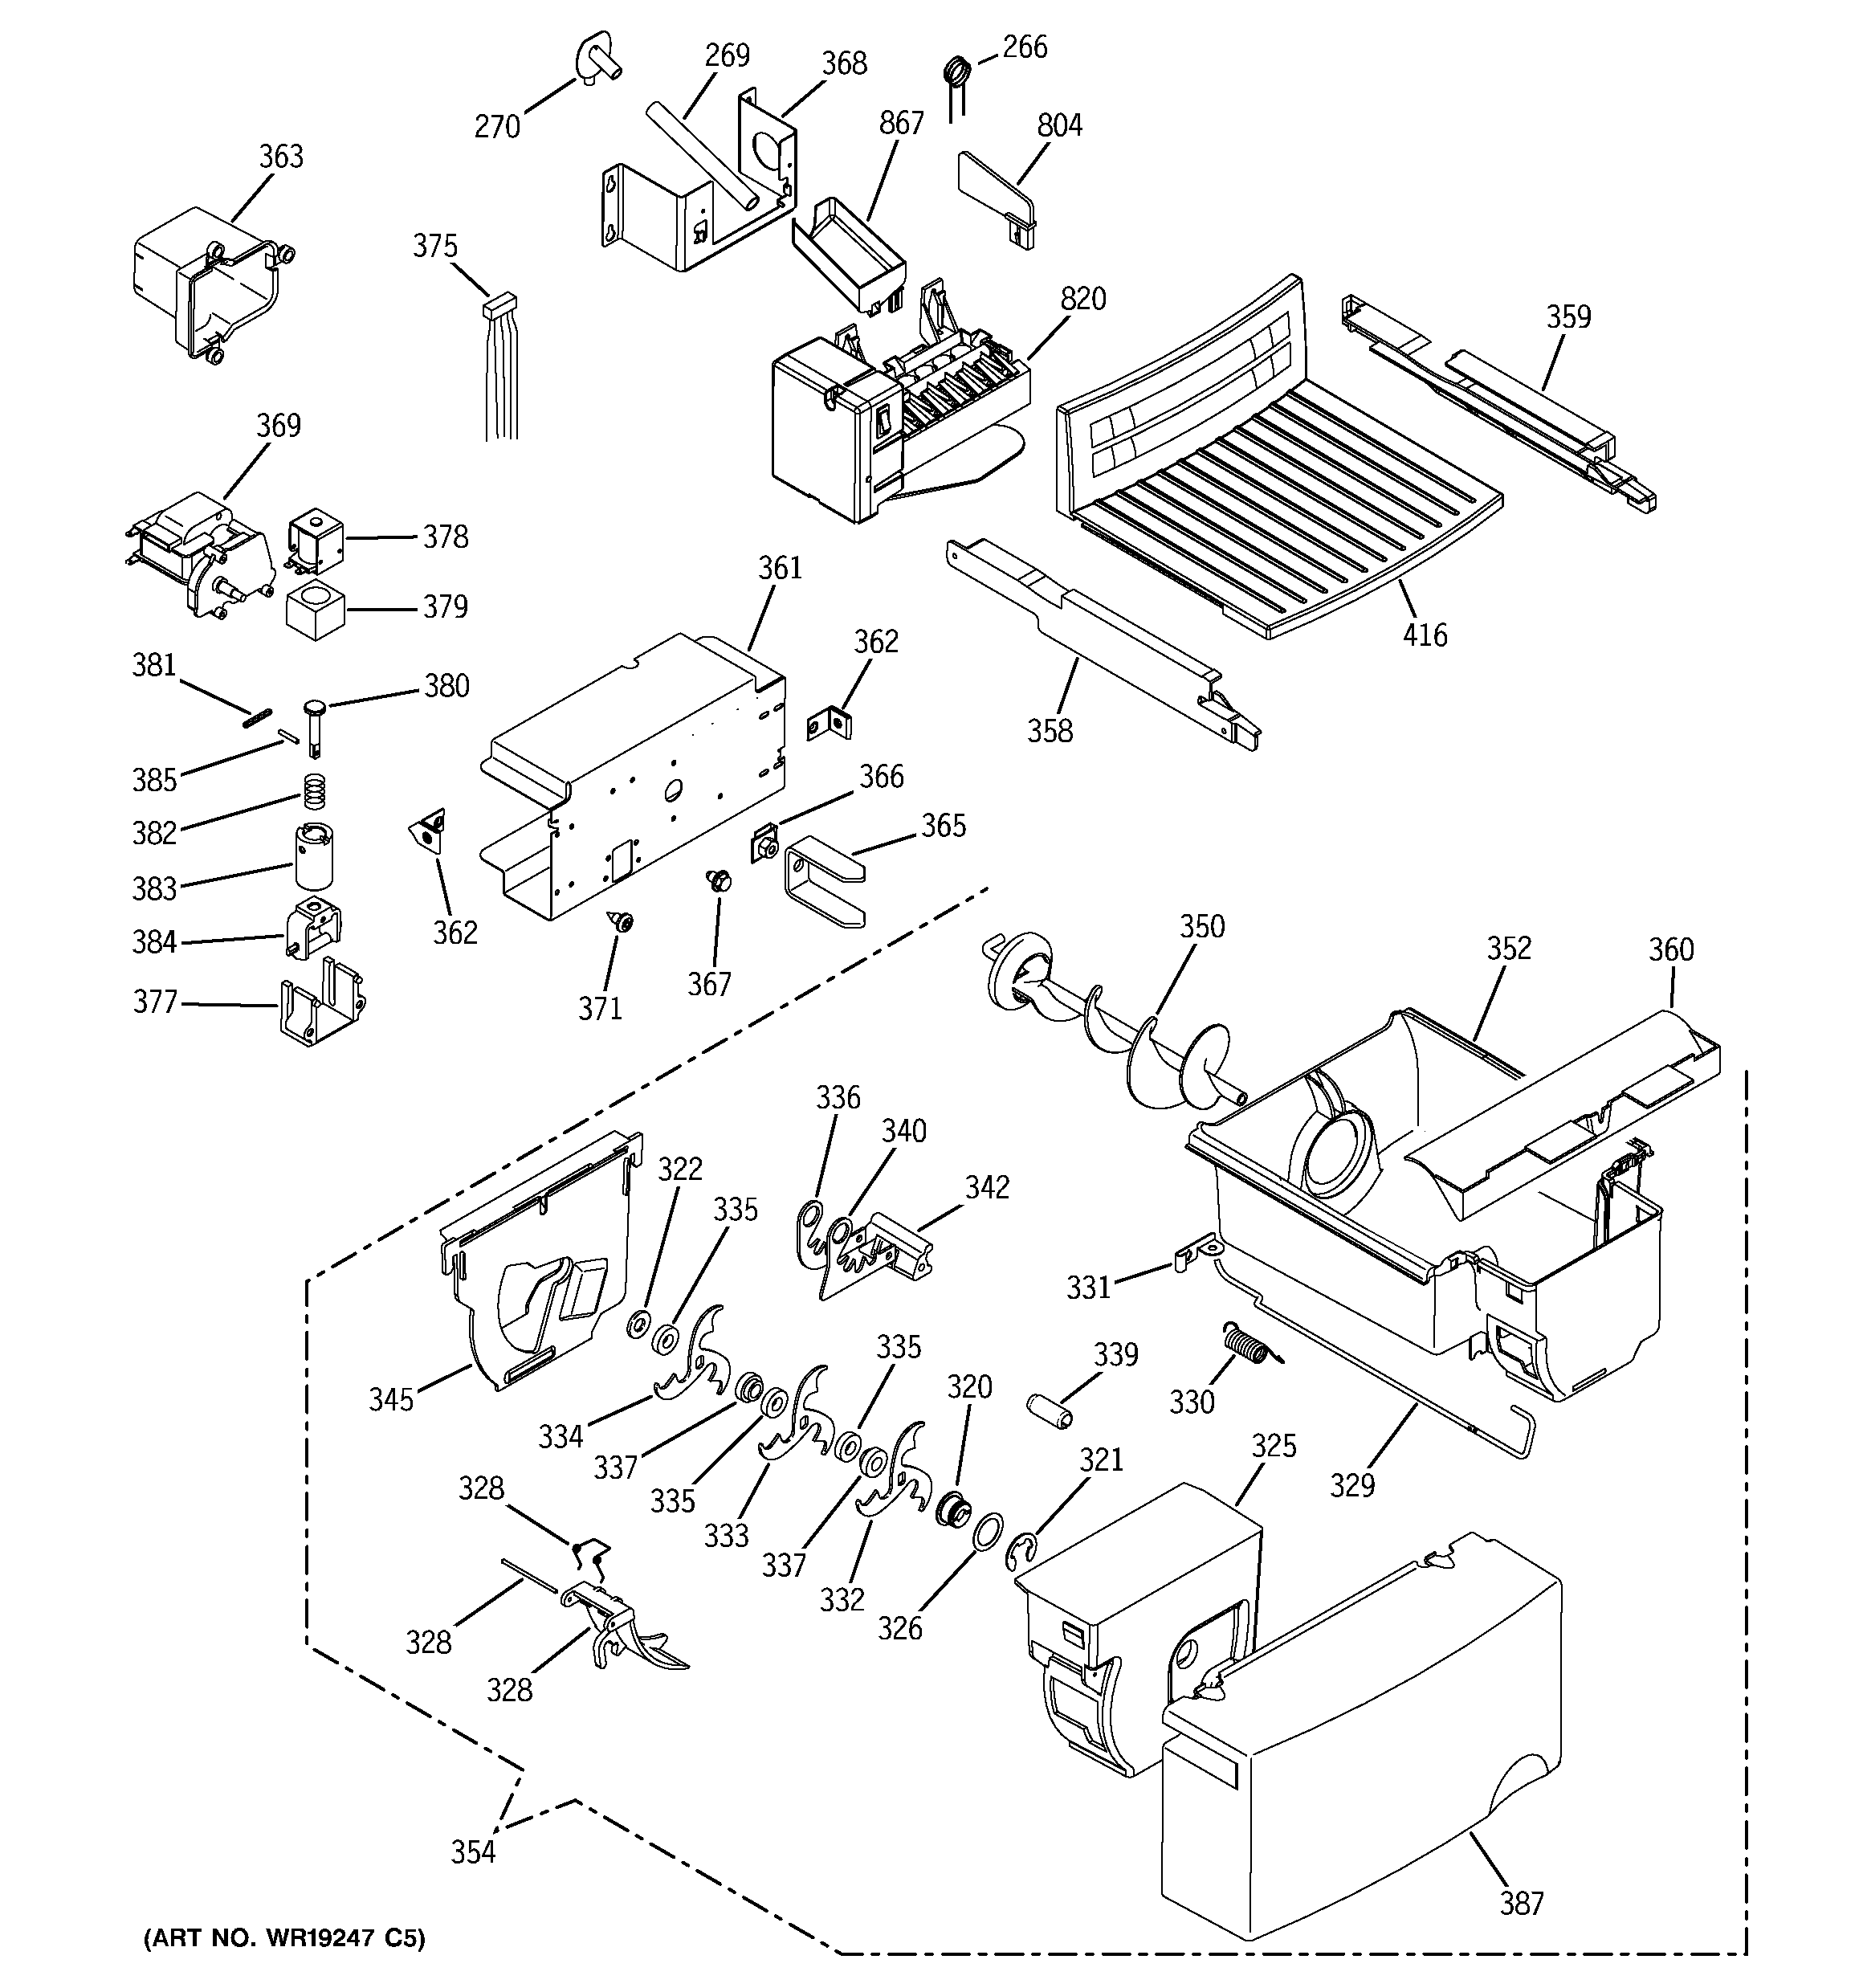 GE GSH22VGPACC ice maker & dispenser diagram